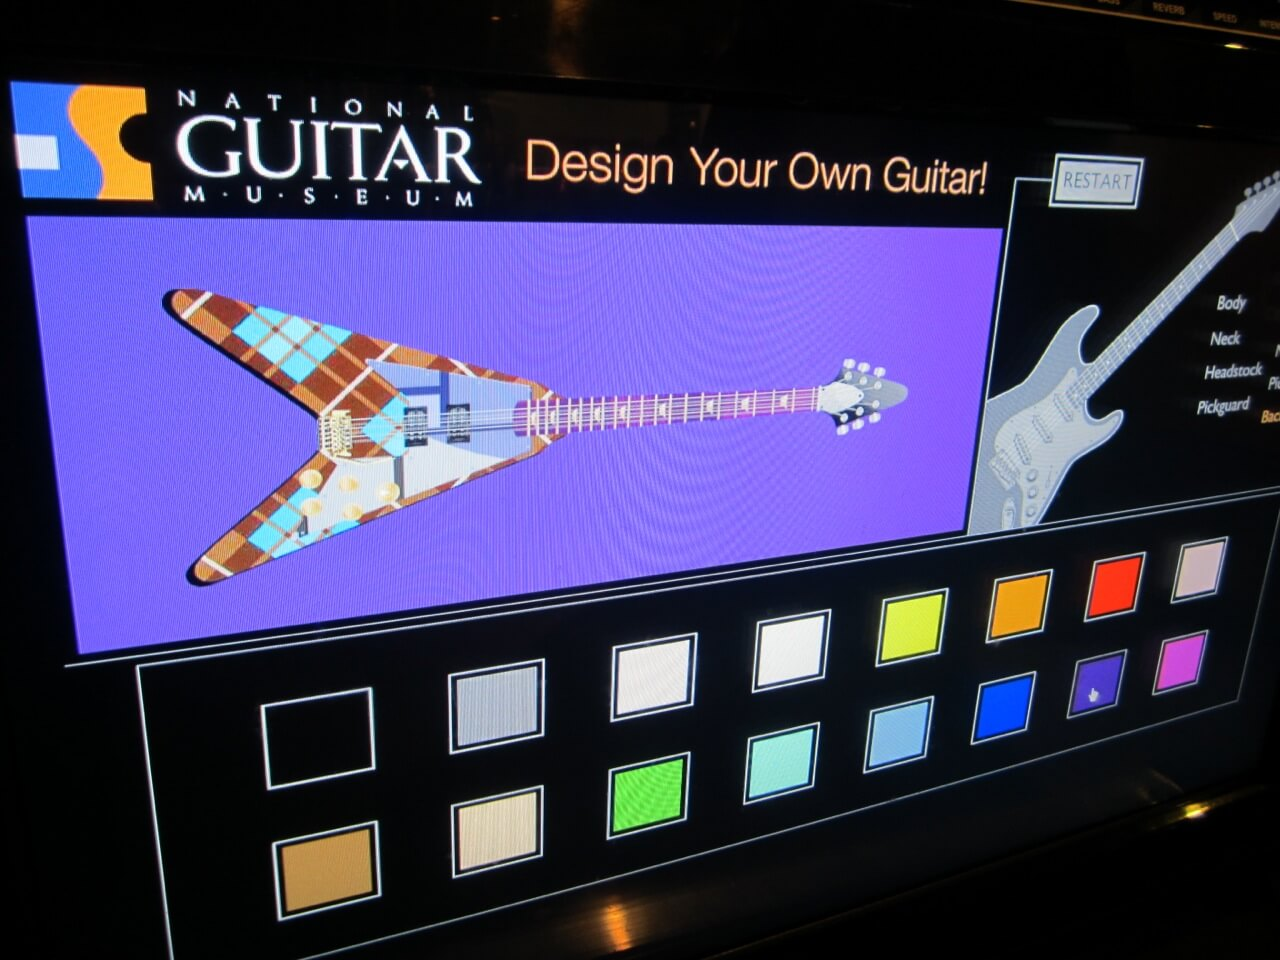 Because you can never have enough touch-screen kiosks in a museum geared for kids.